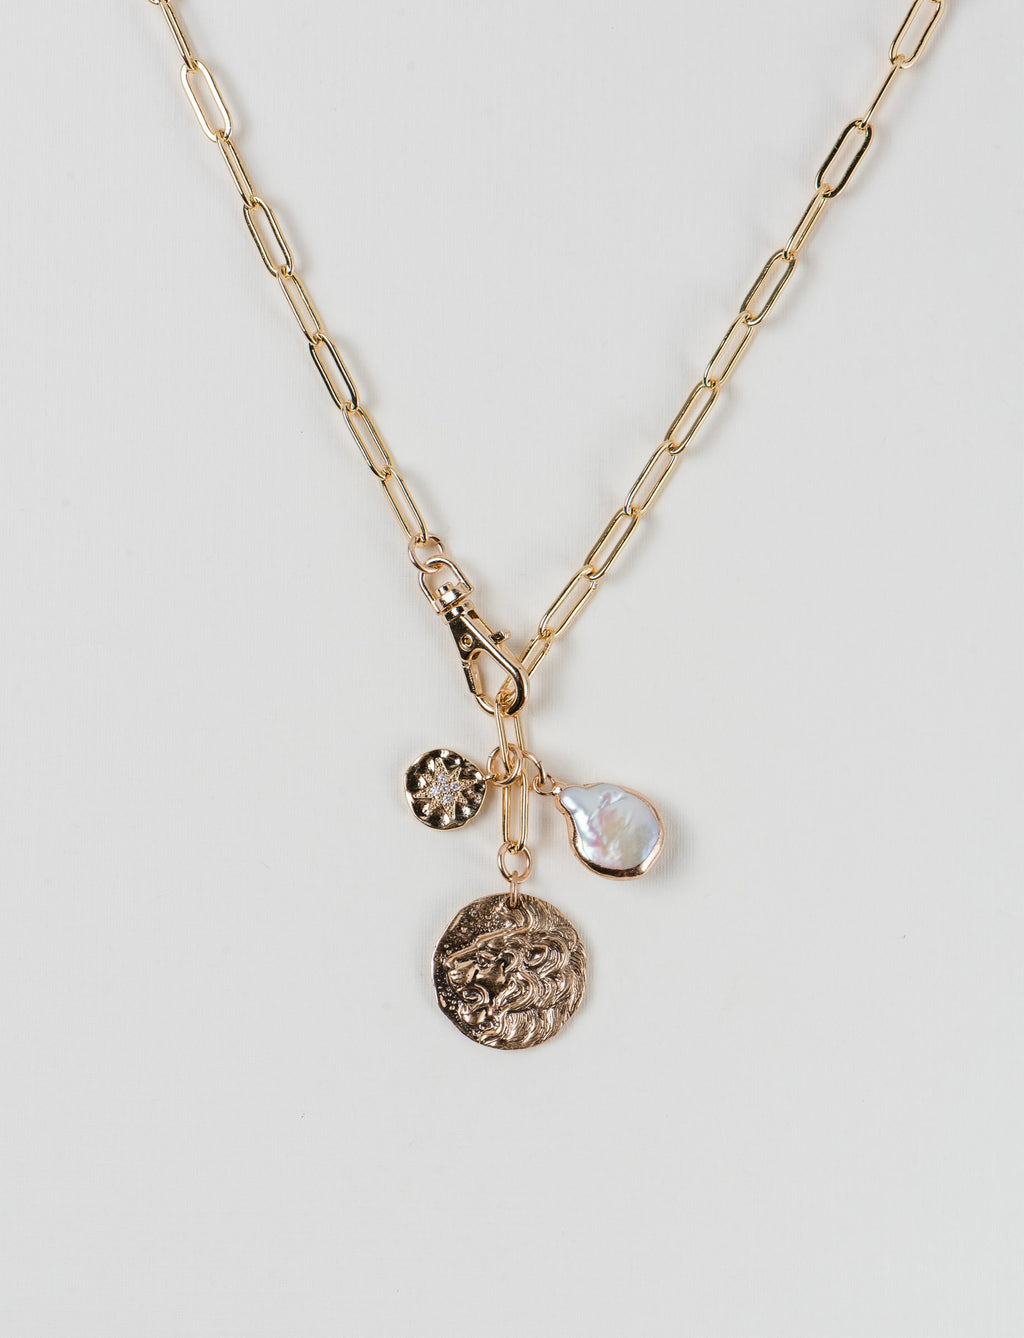 The Lions Roar Necklace